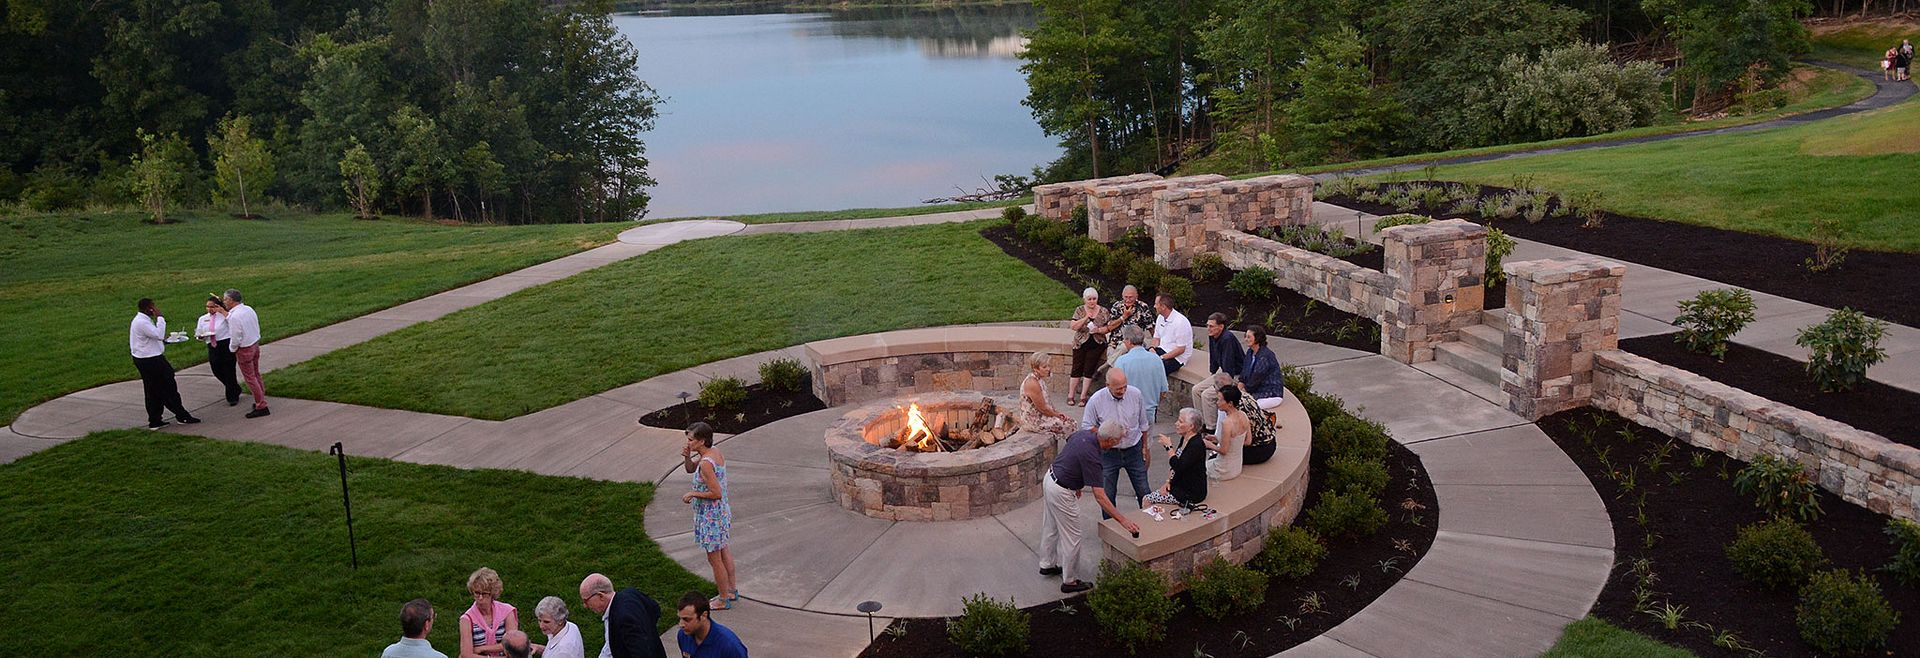 Group of people by the firepit lakeside